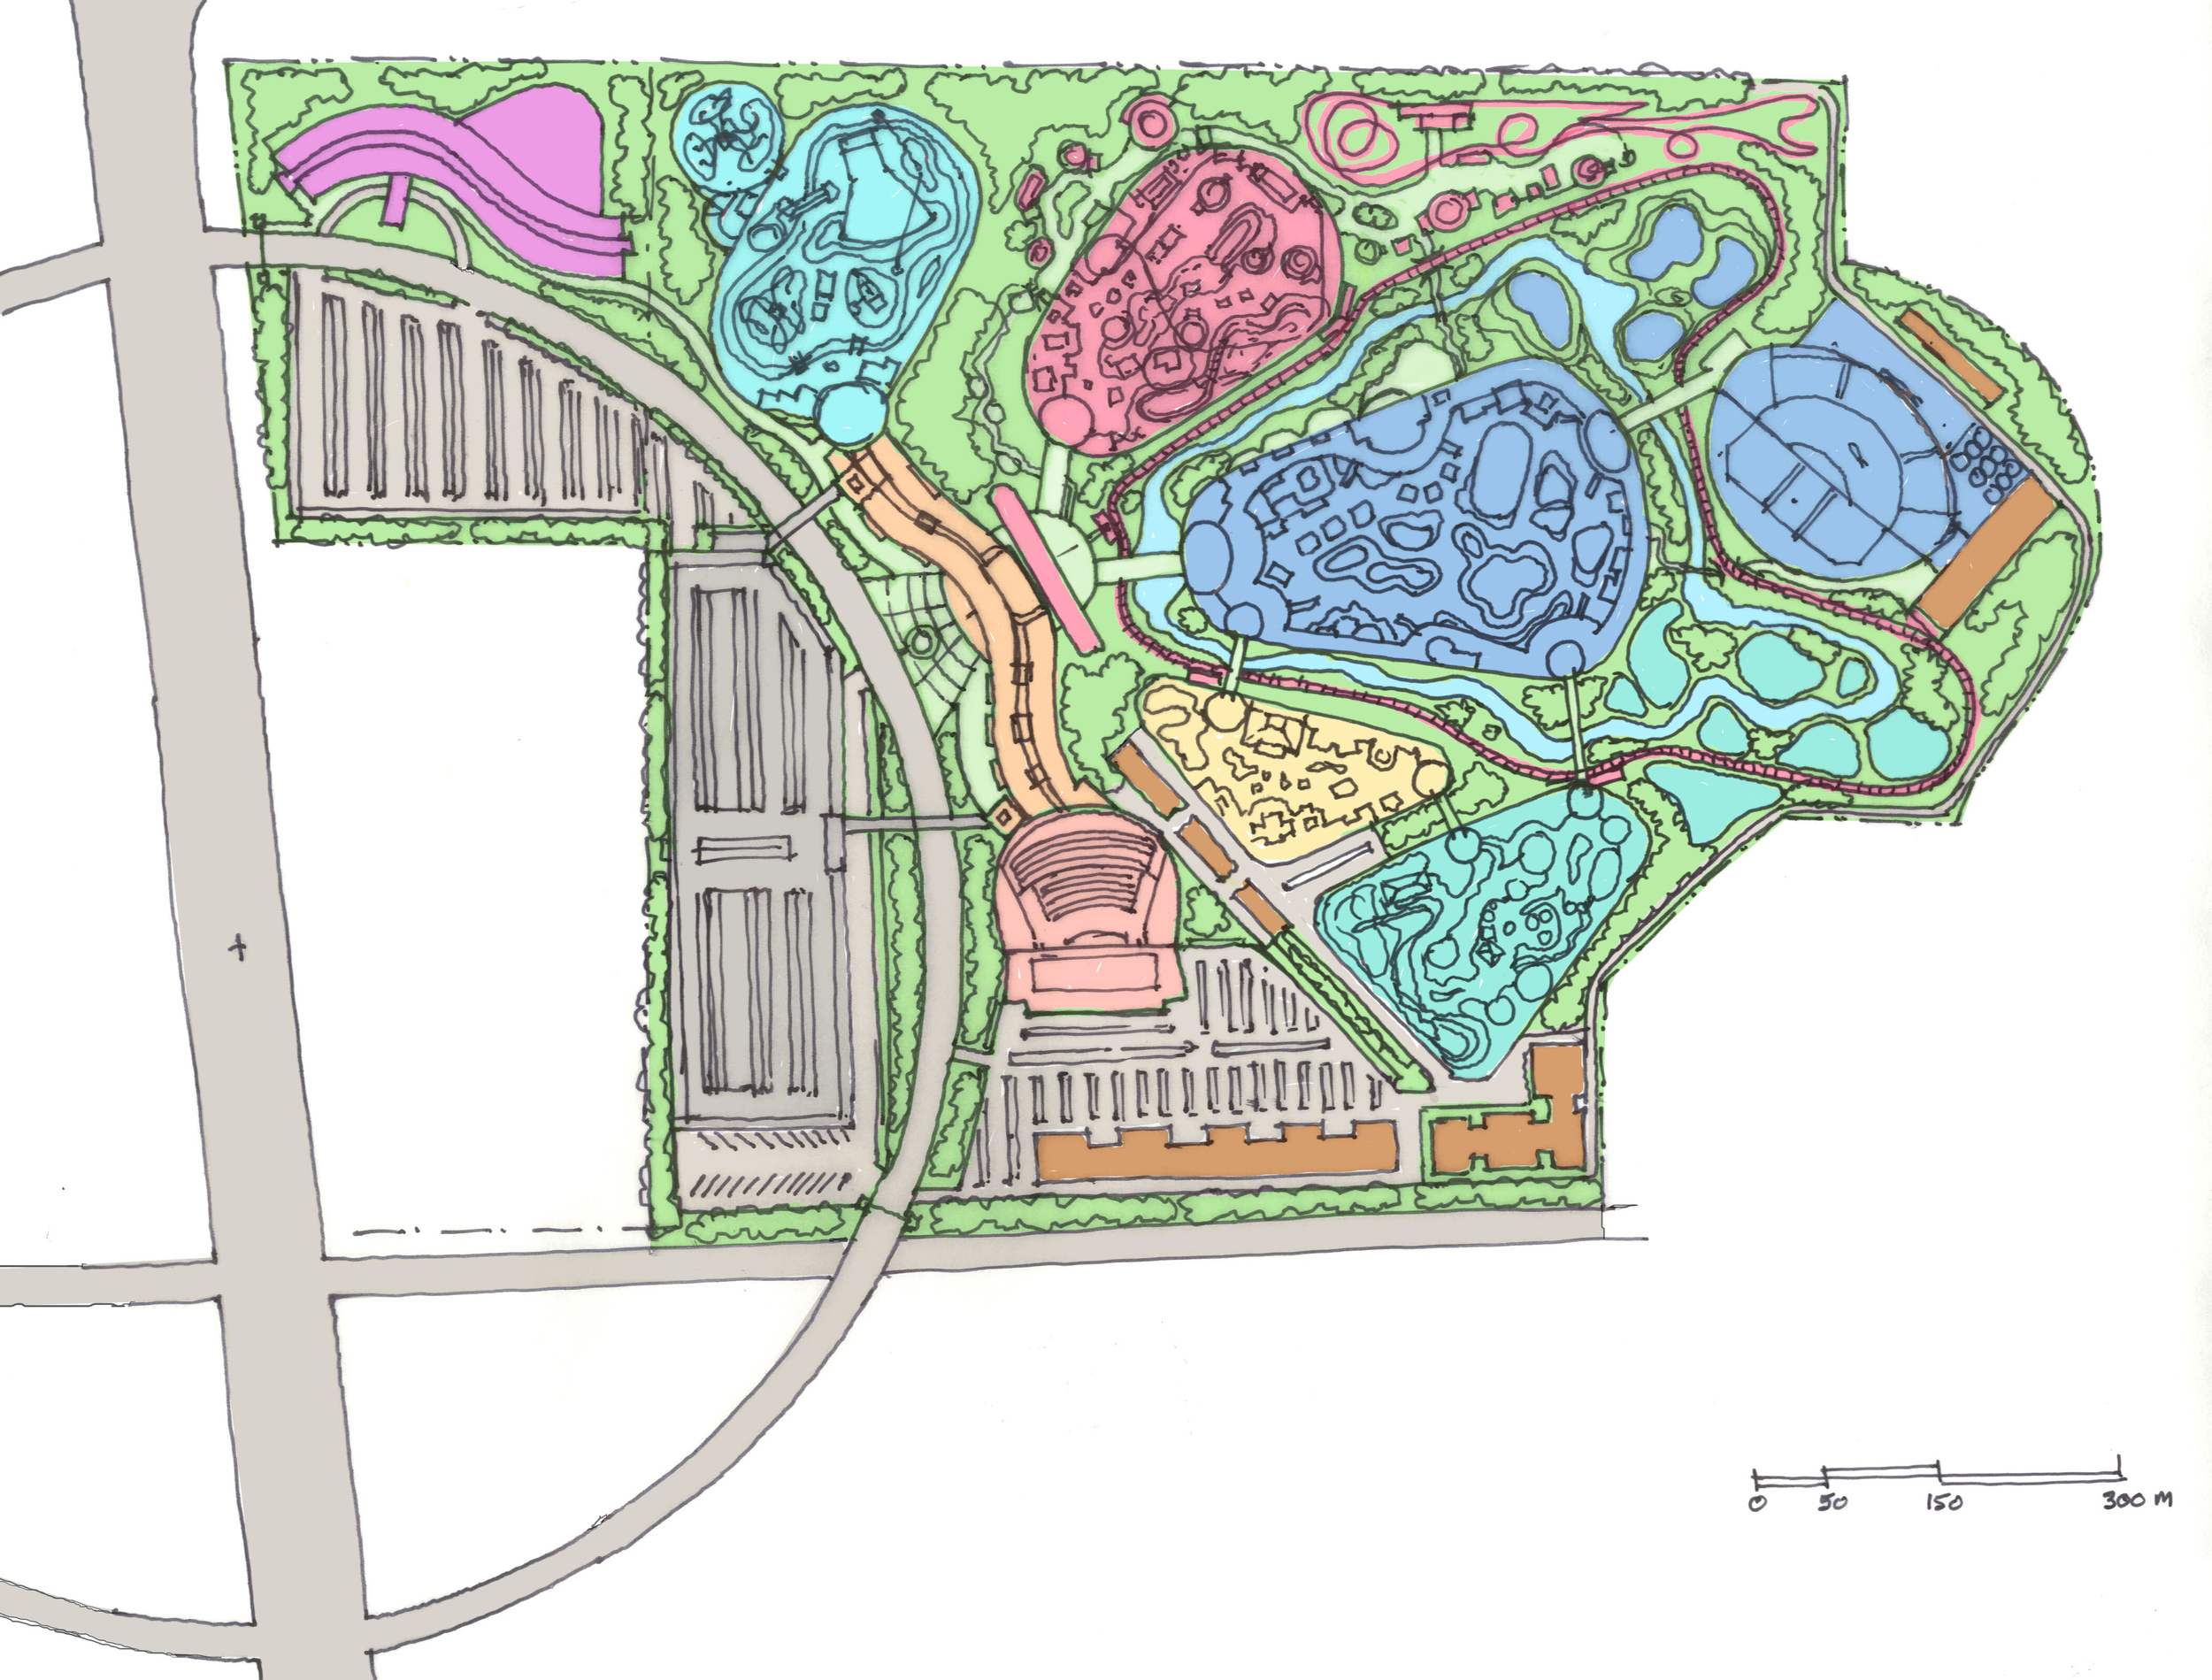 concept layout 28Oct2008 color.jpg